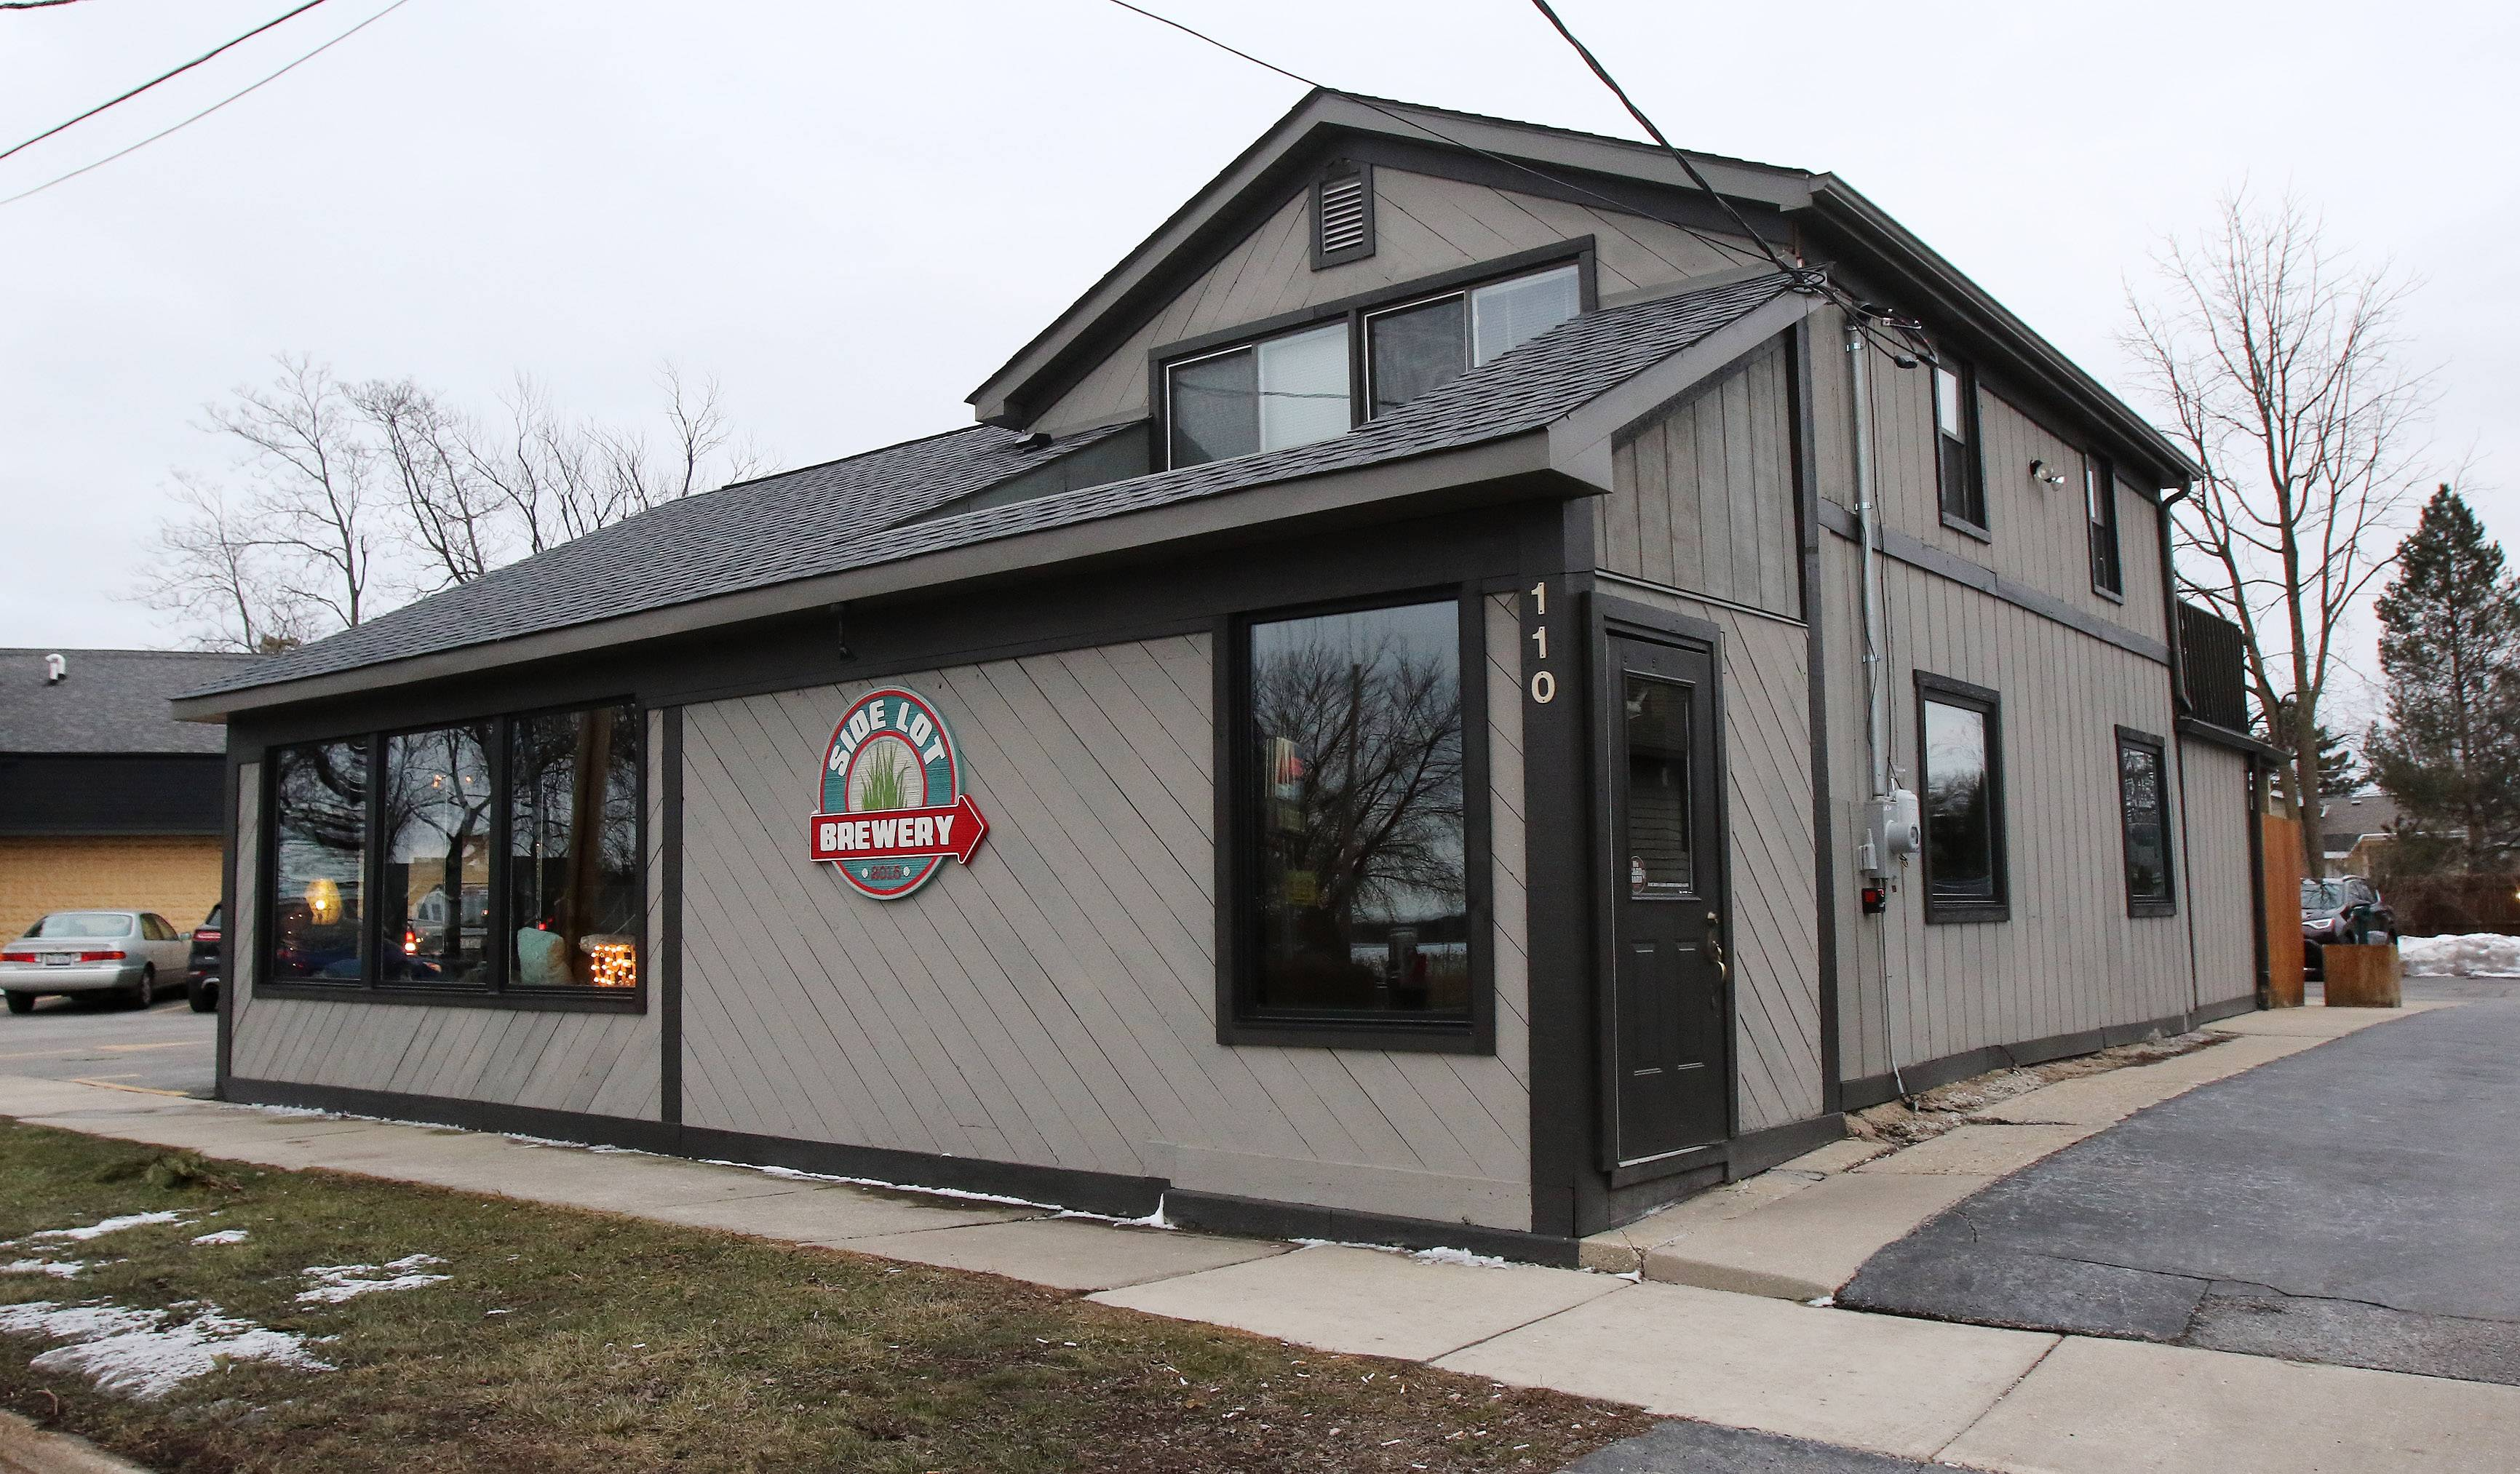 Side Lot Brewery in Wauconda serves craft beer, cocktails and small plate menu options.